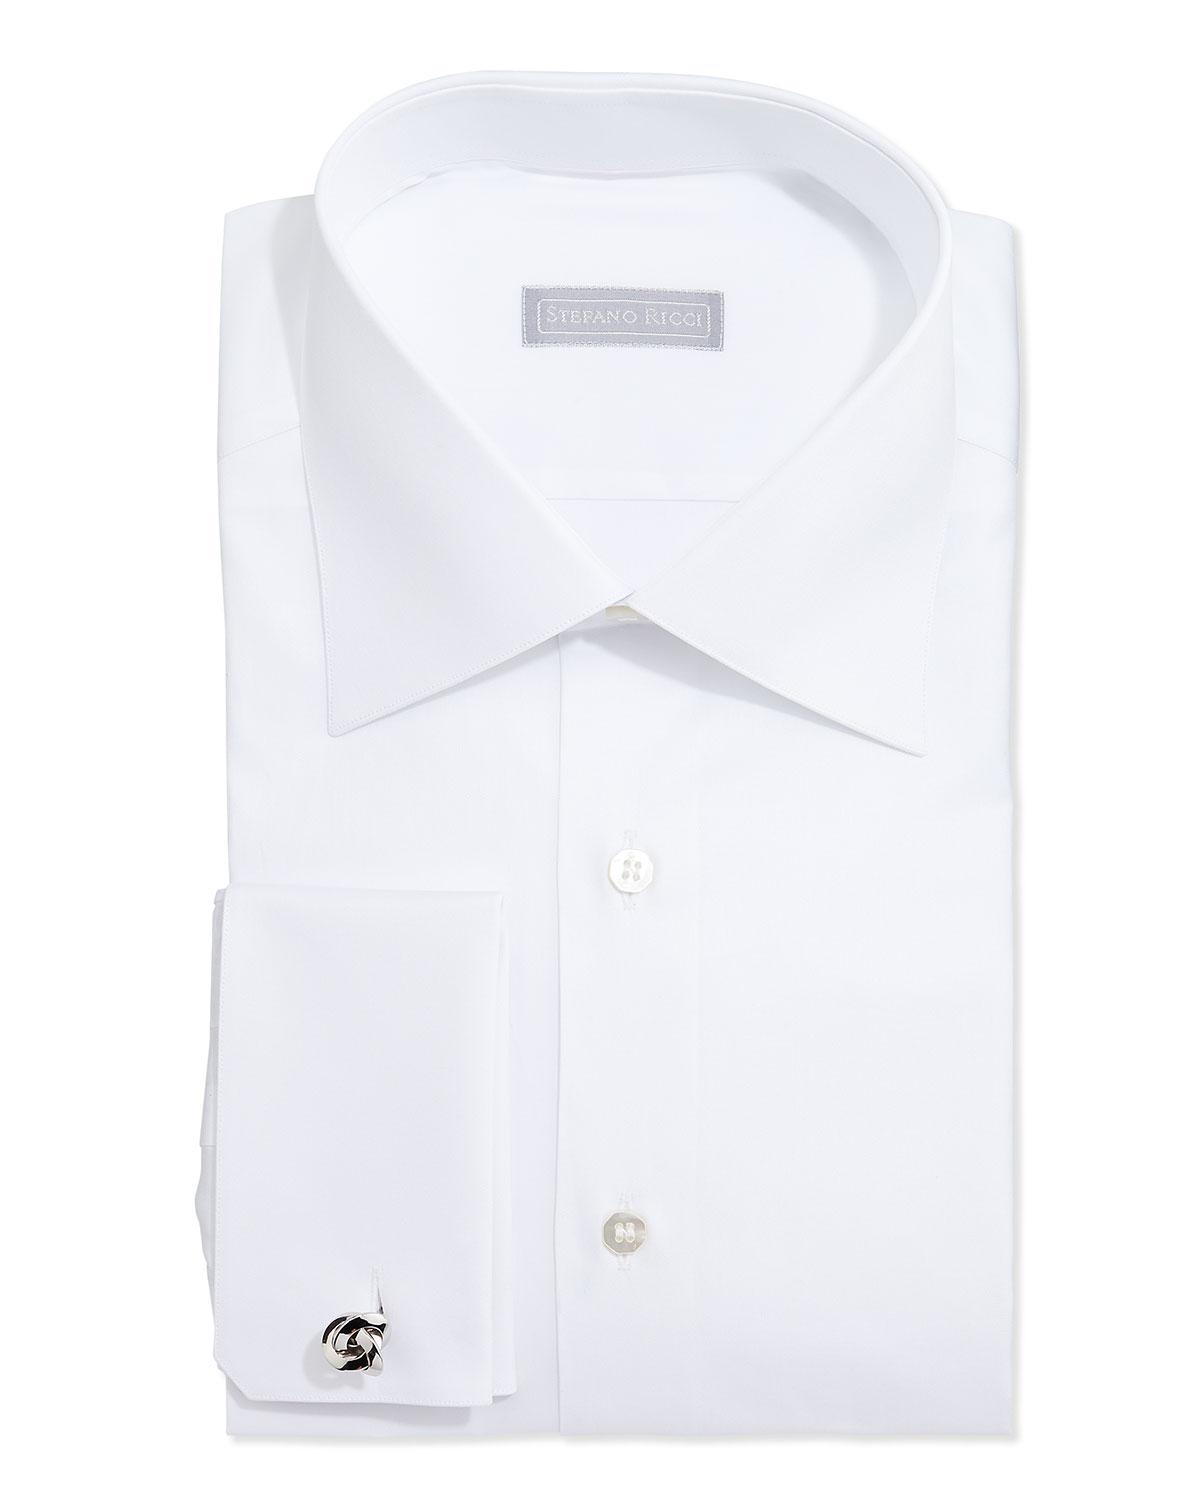 Stefano Ricci Basic French-cuff Solid Dress Shirt, White In Blue